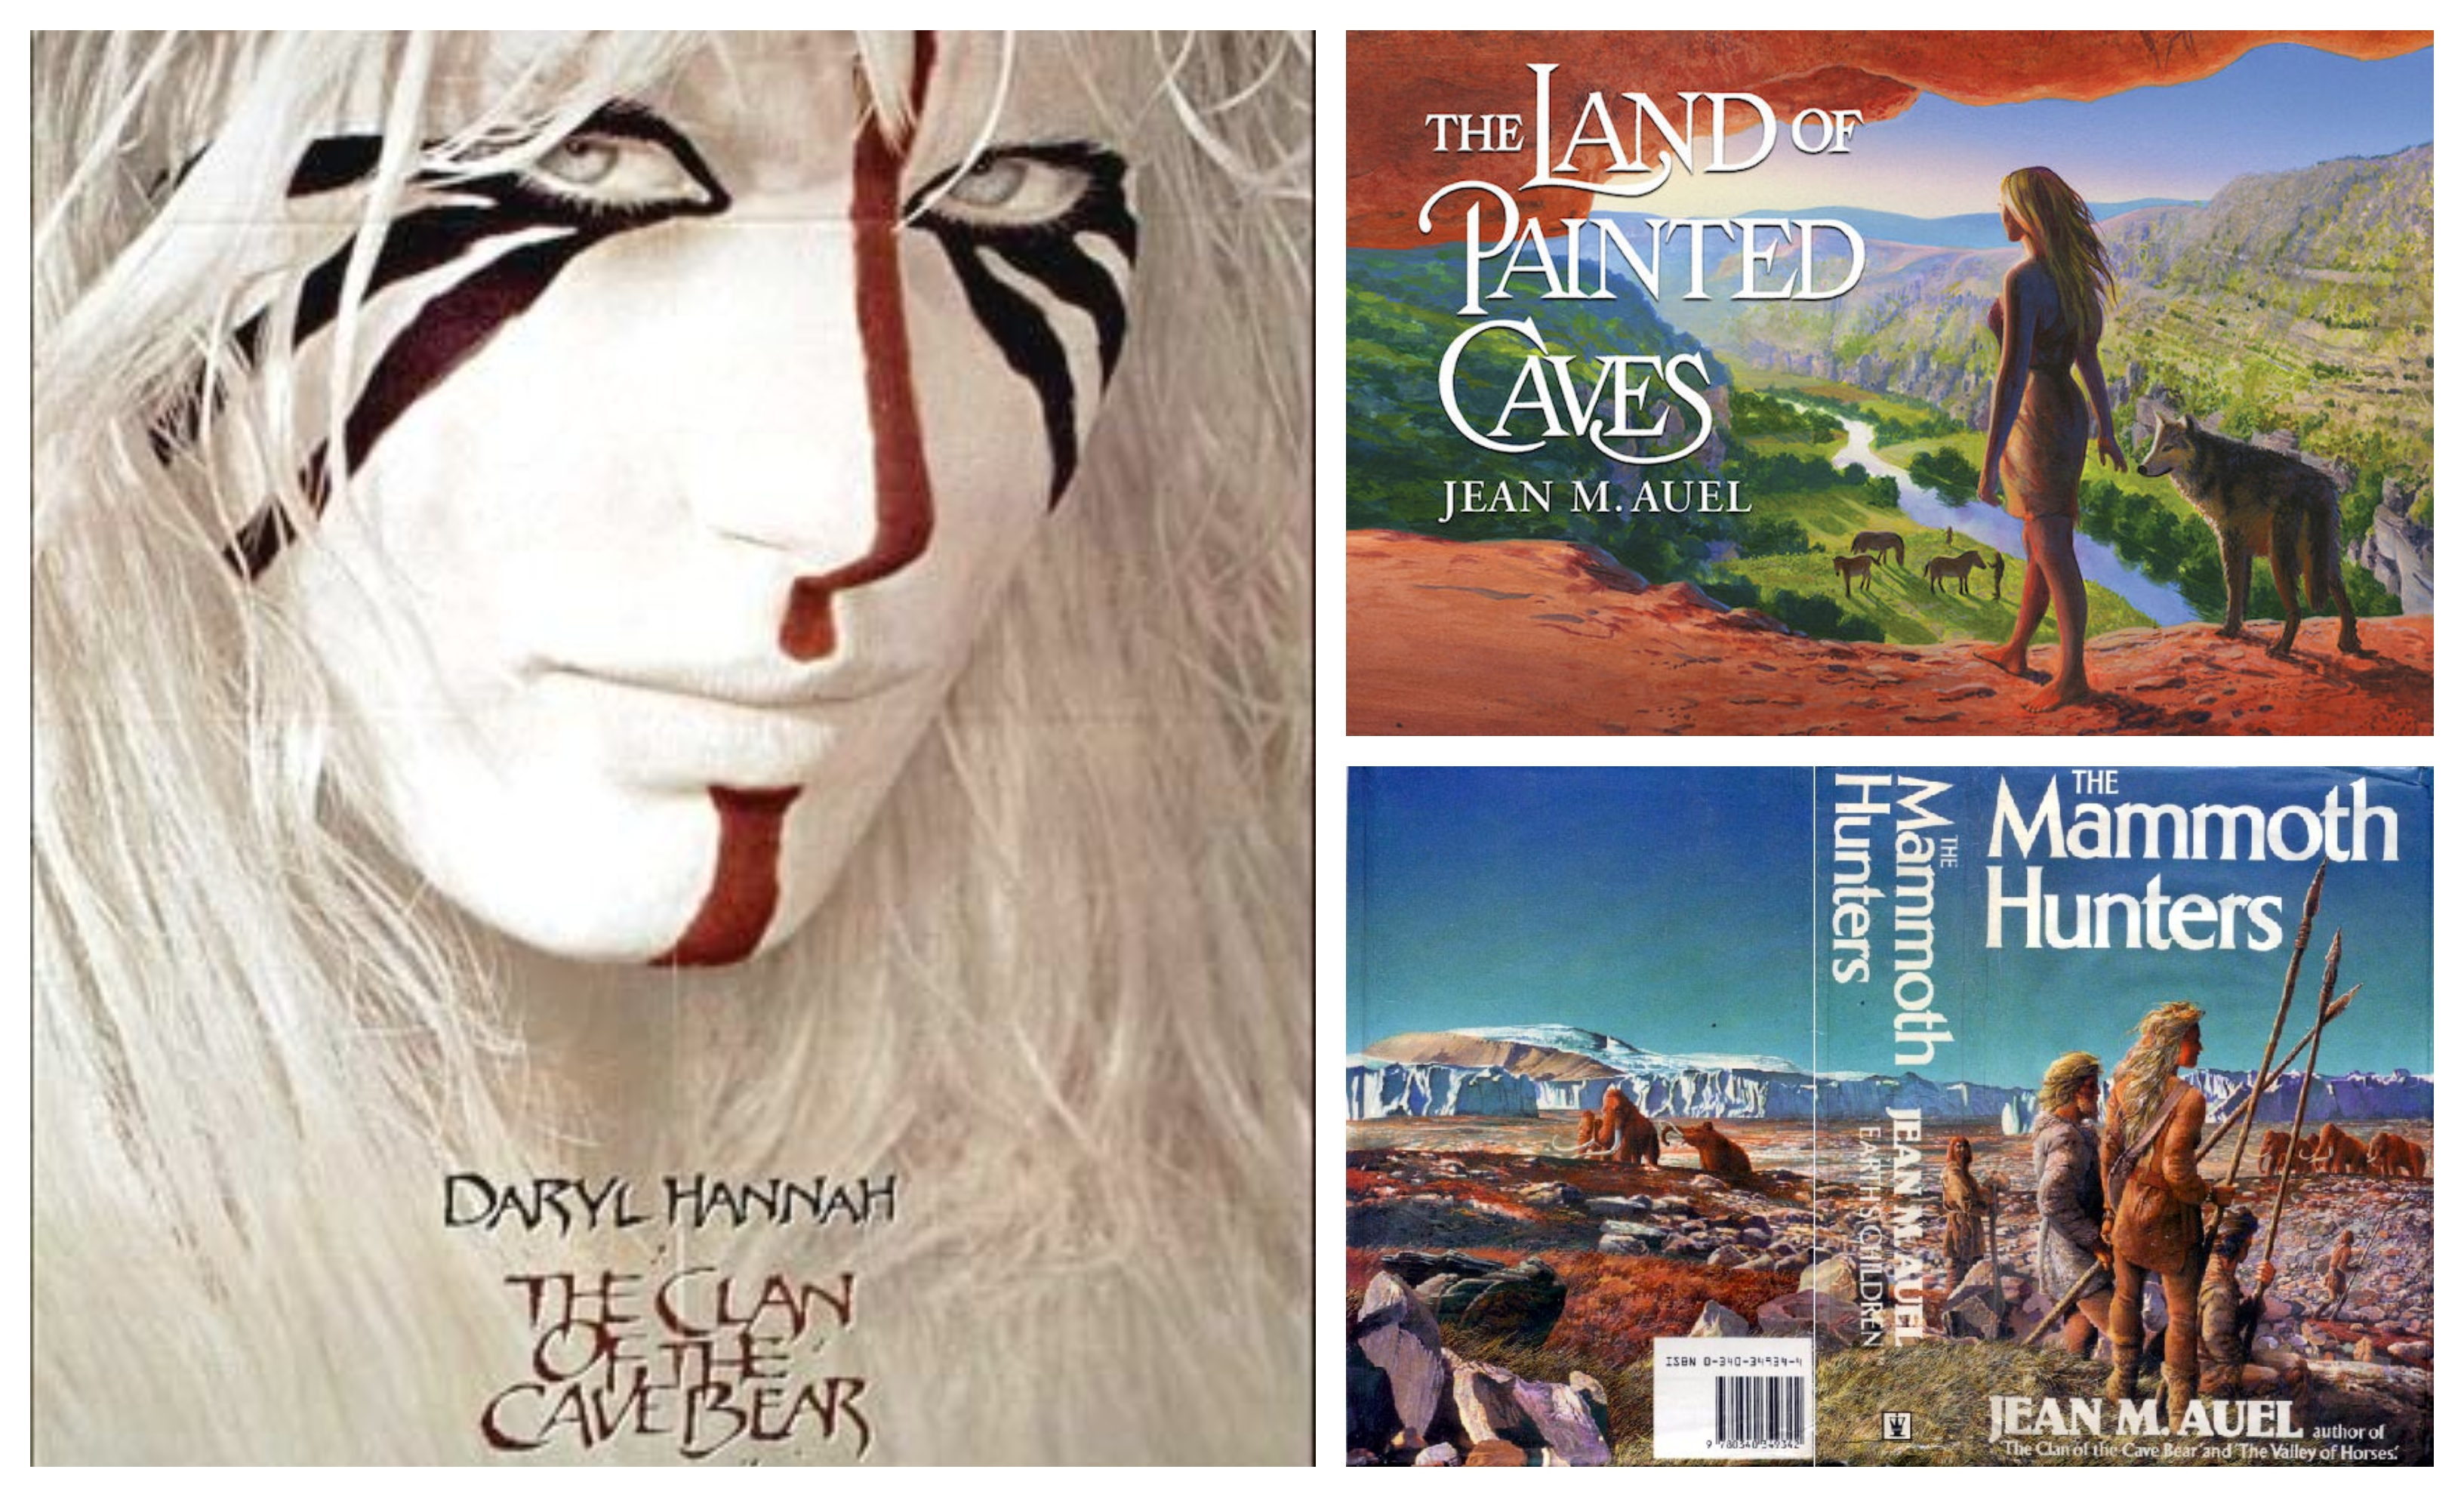 A film poster showing Daryl Hannah painted all in white with primitive red and black facepaint; two book covers showing a buxom blonde woman on the prehistoric savannah